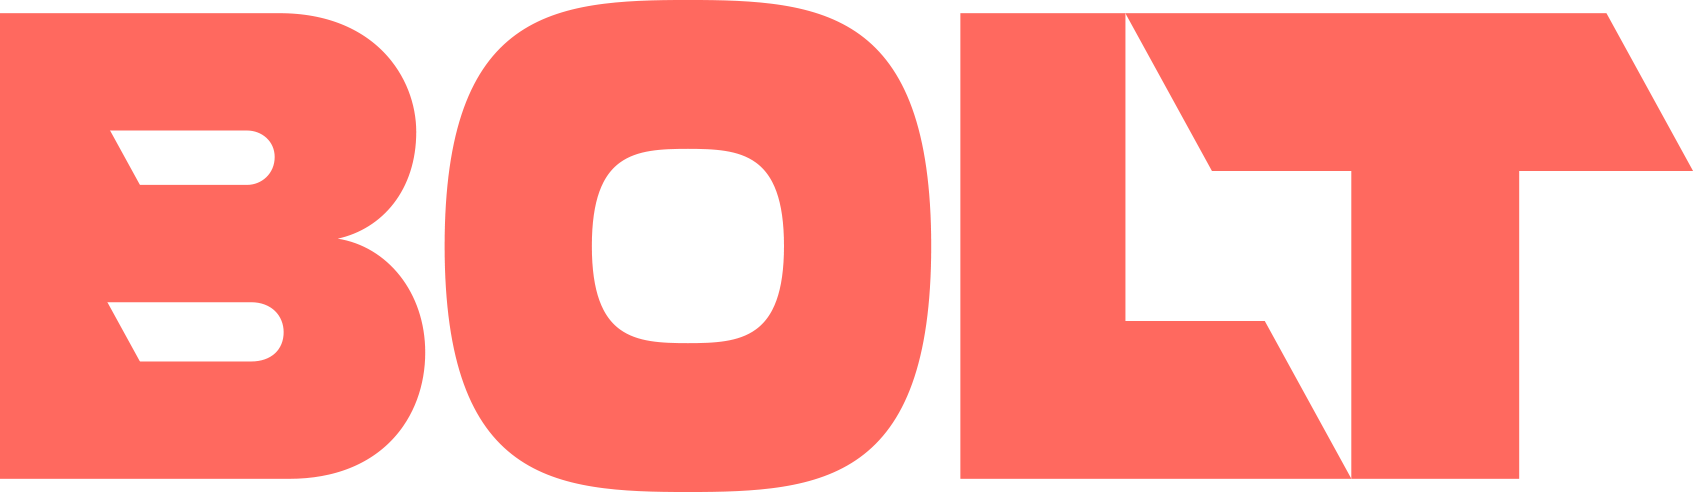 Bolt Dental Marketing Logo